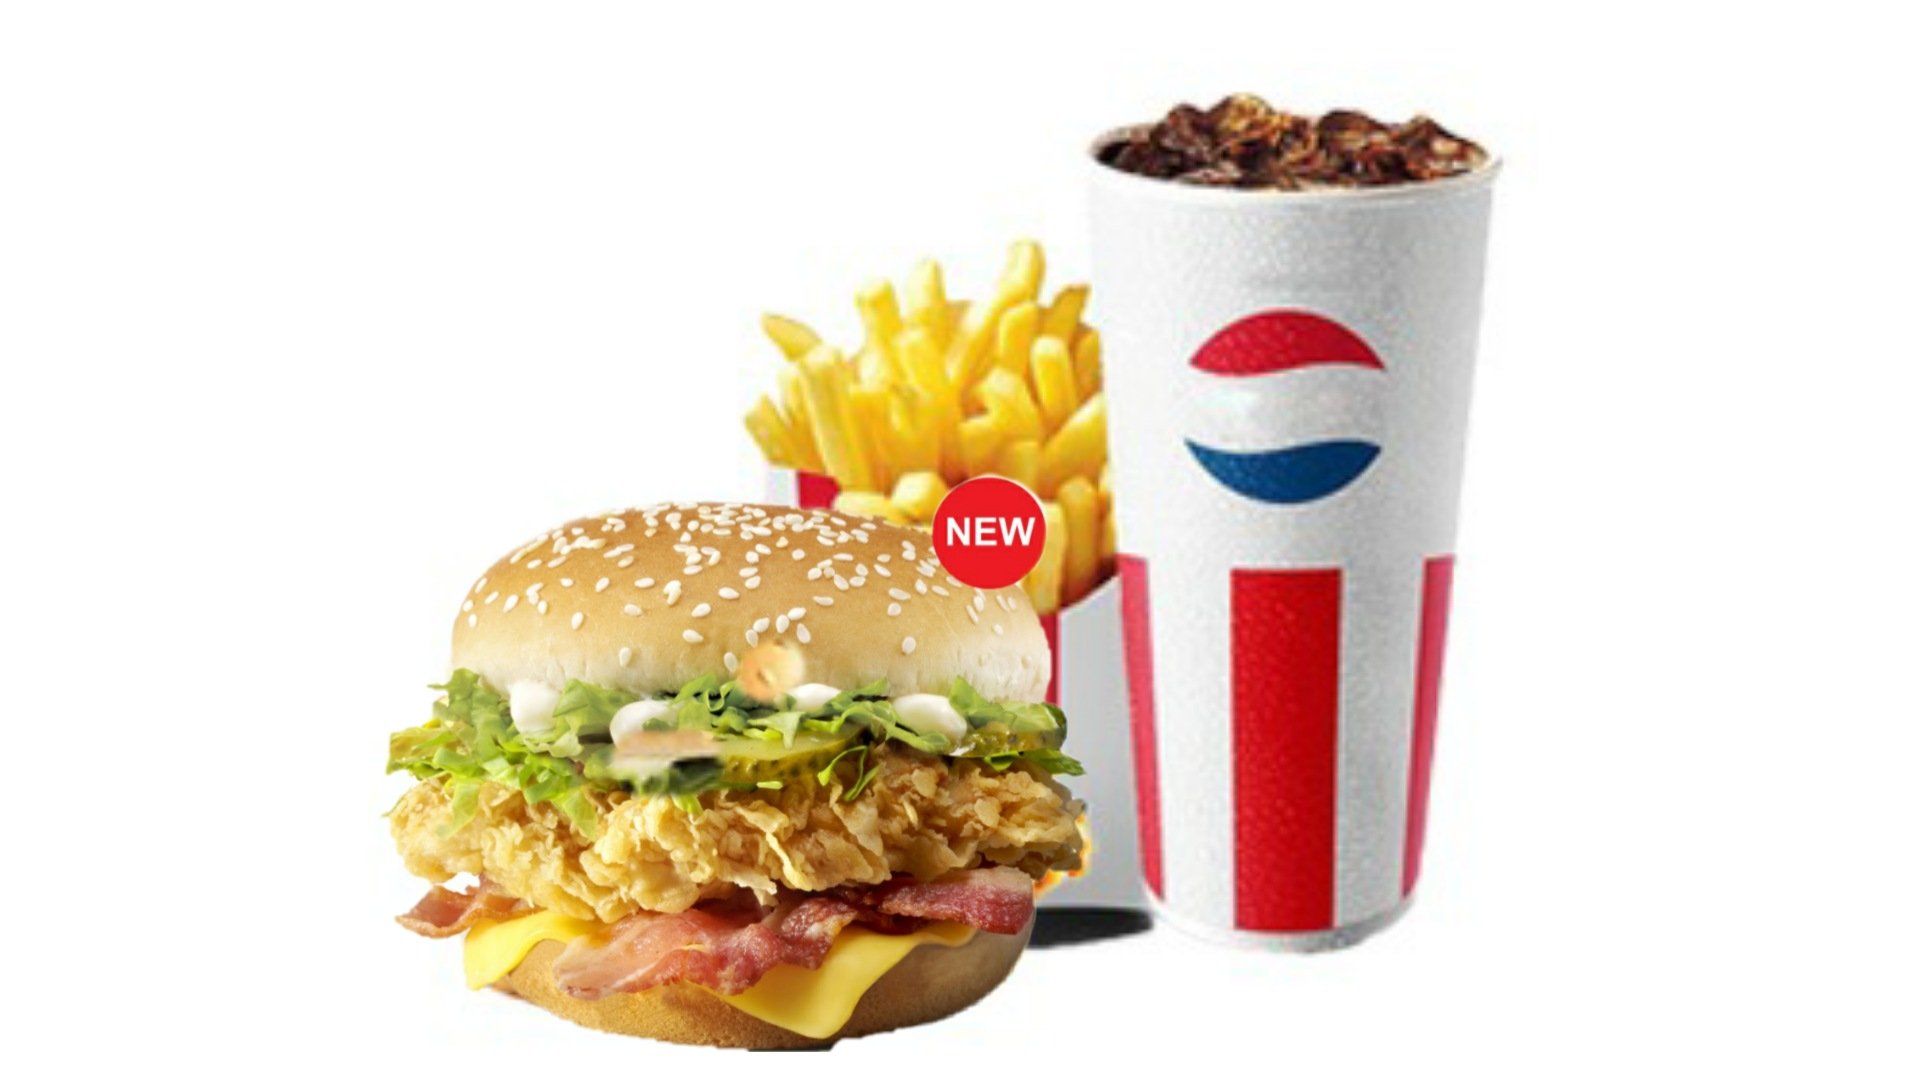 Zinger deluxe burger, patate, perpsi e mesme